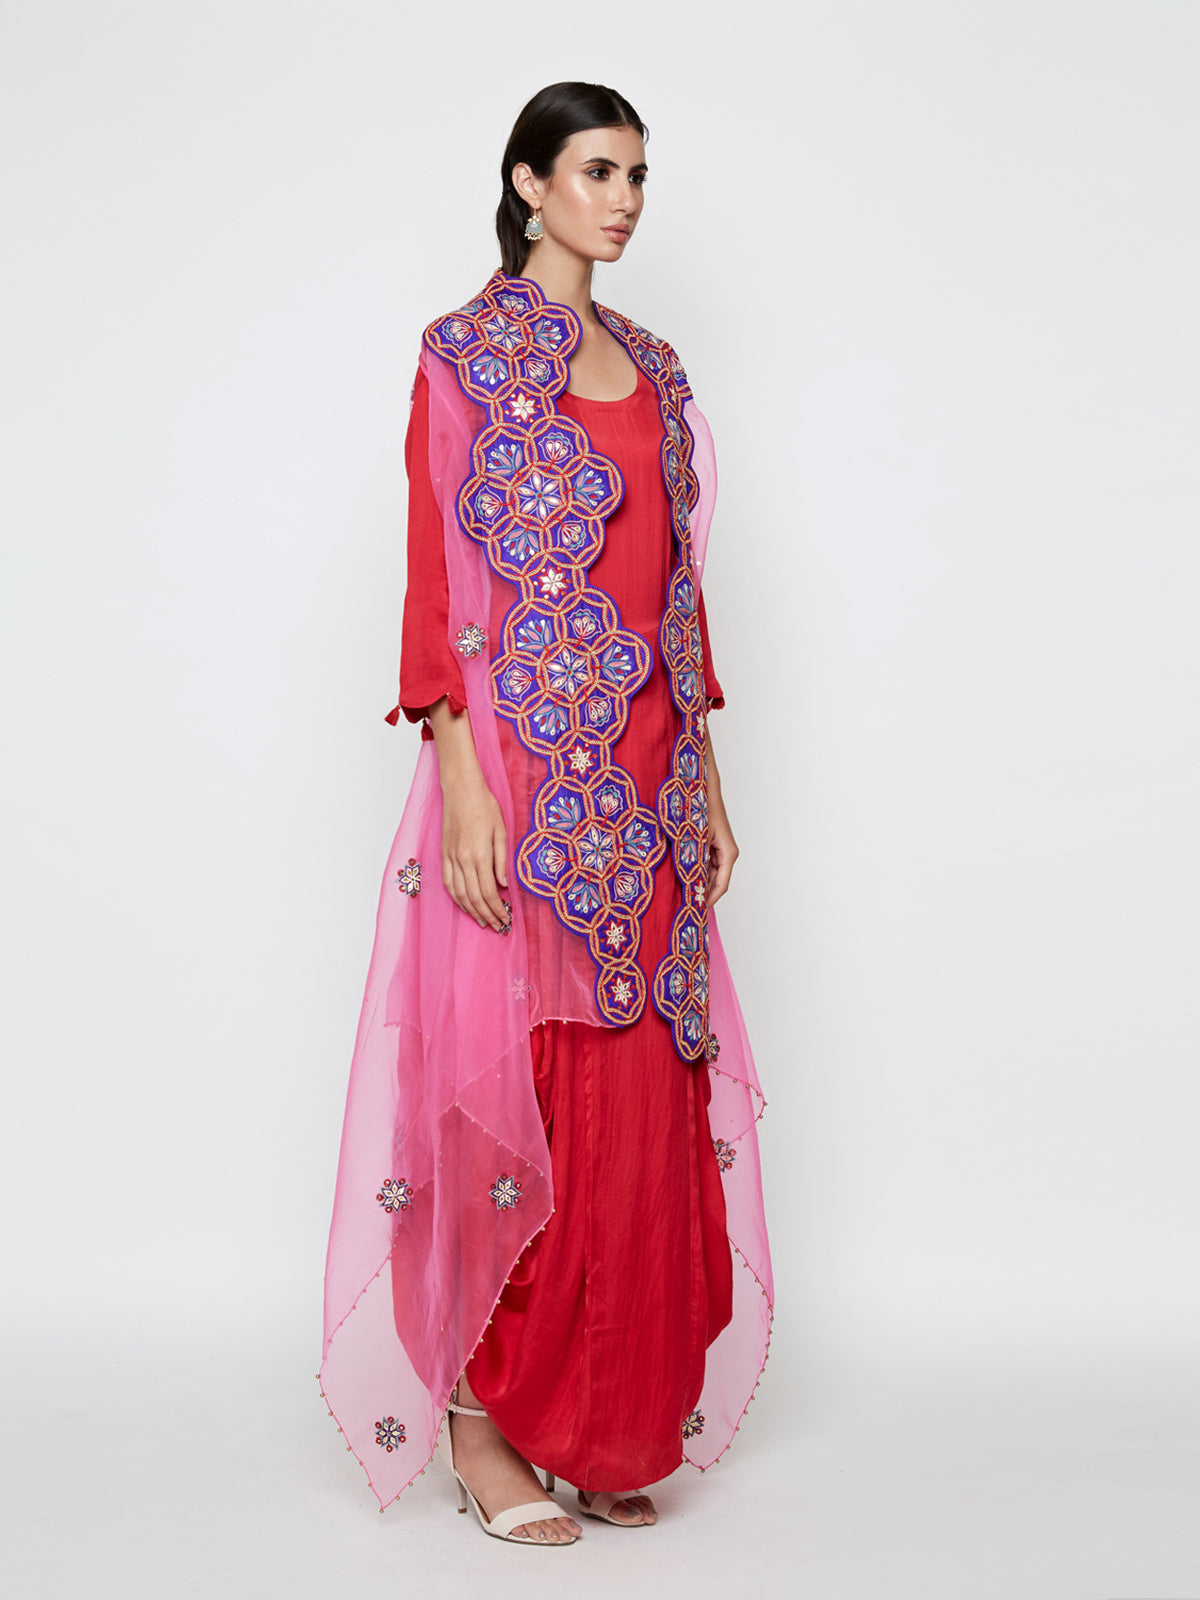 RED MODAL SATIN DHOTI DRESS WITH PINK EMBROIDED CAPE